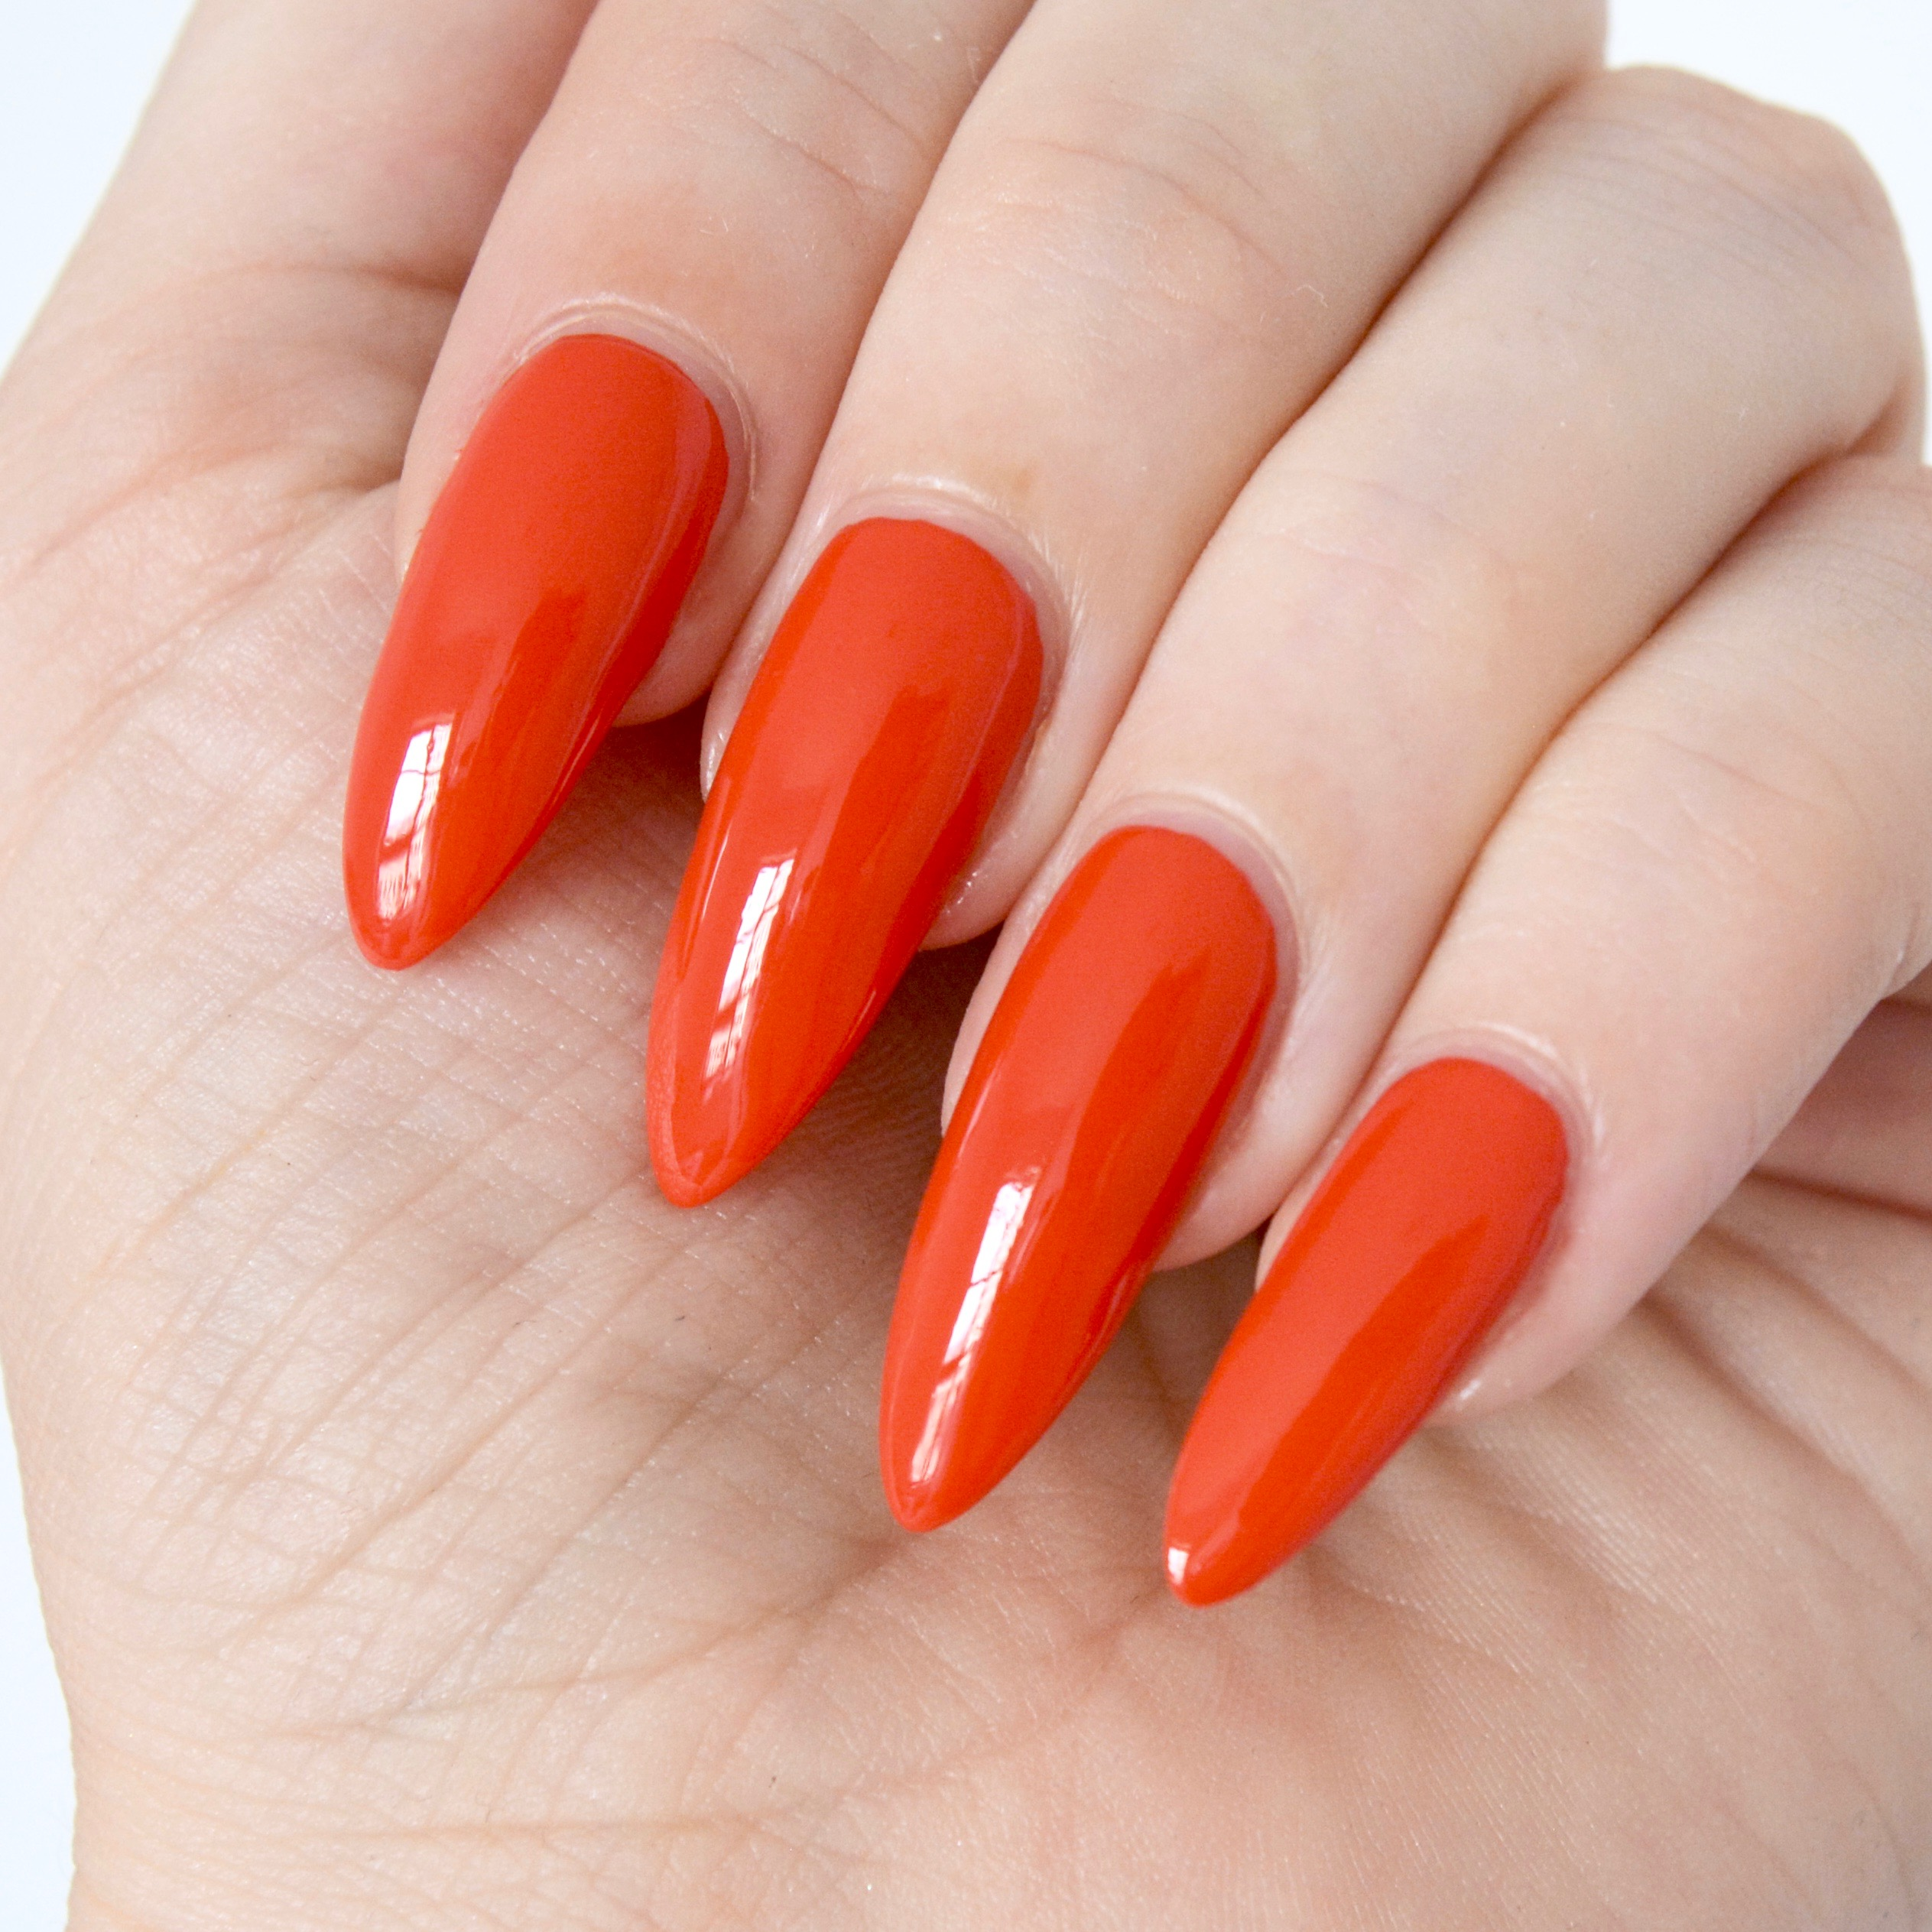 essie black personals Meet essie singles online & chat in the forums dhu is a 100% free dating site to find personals & casual encounters in essie.